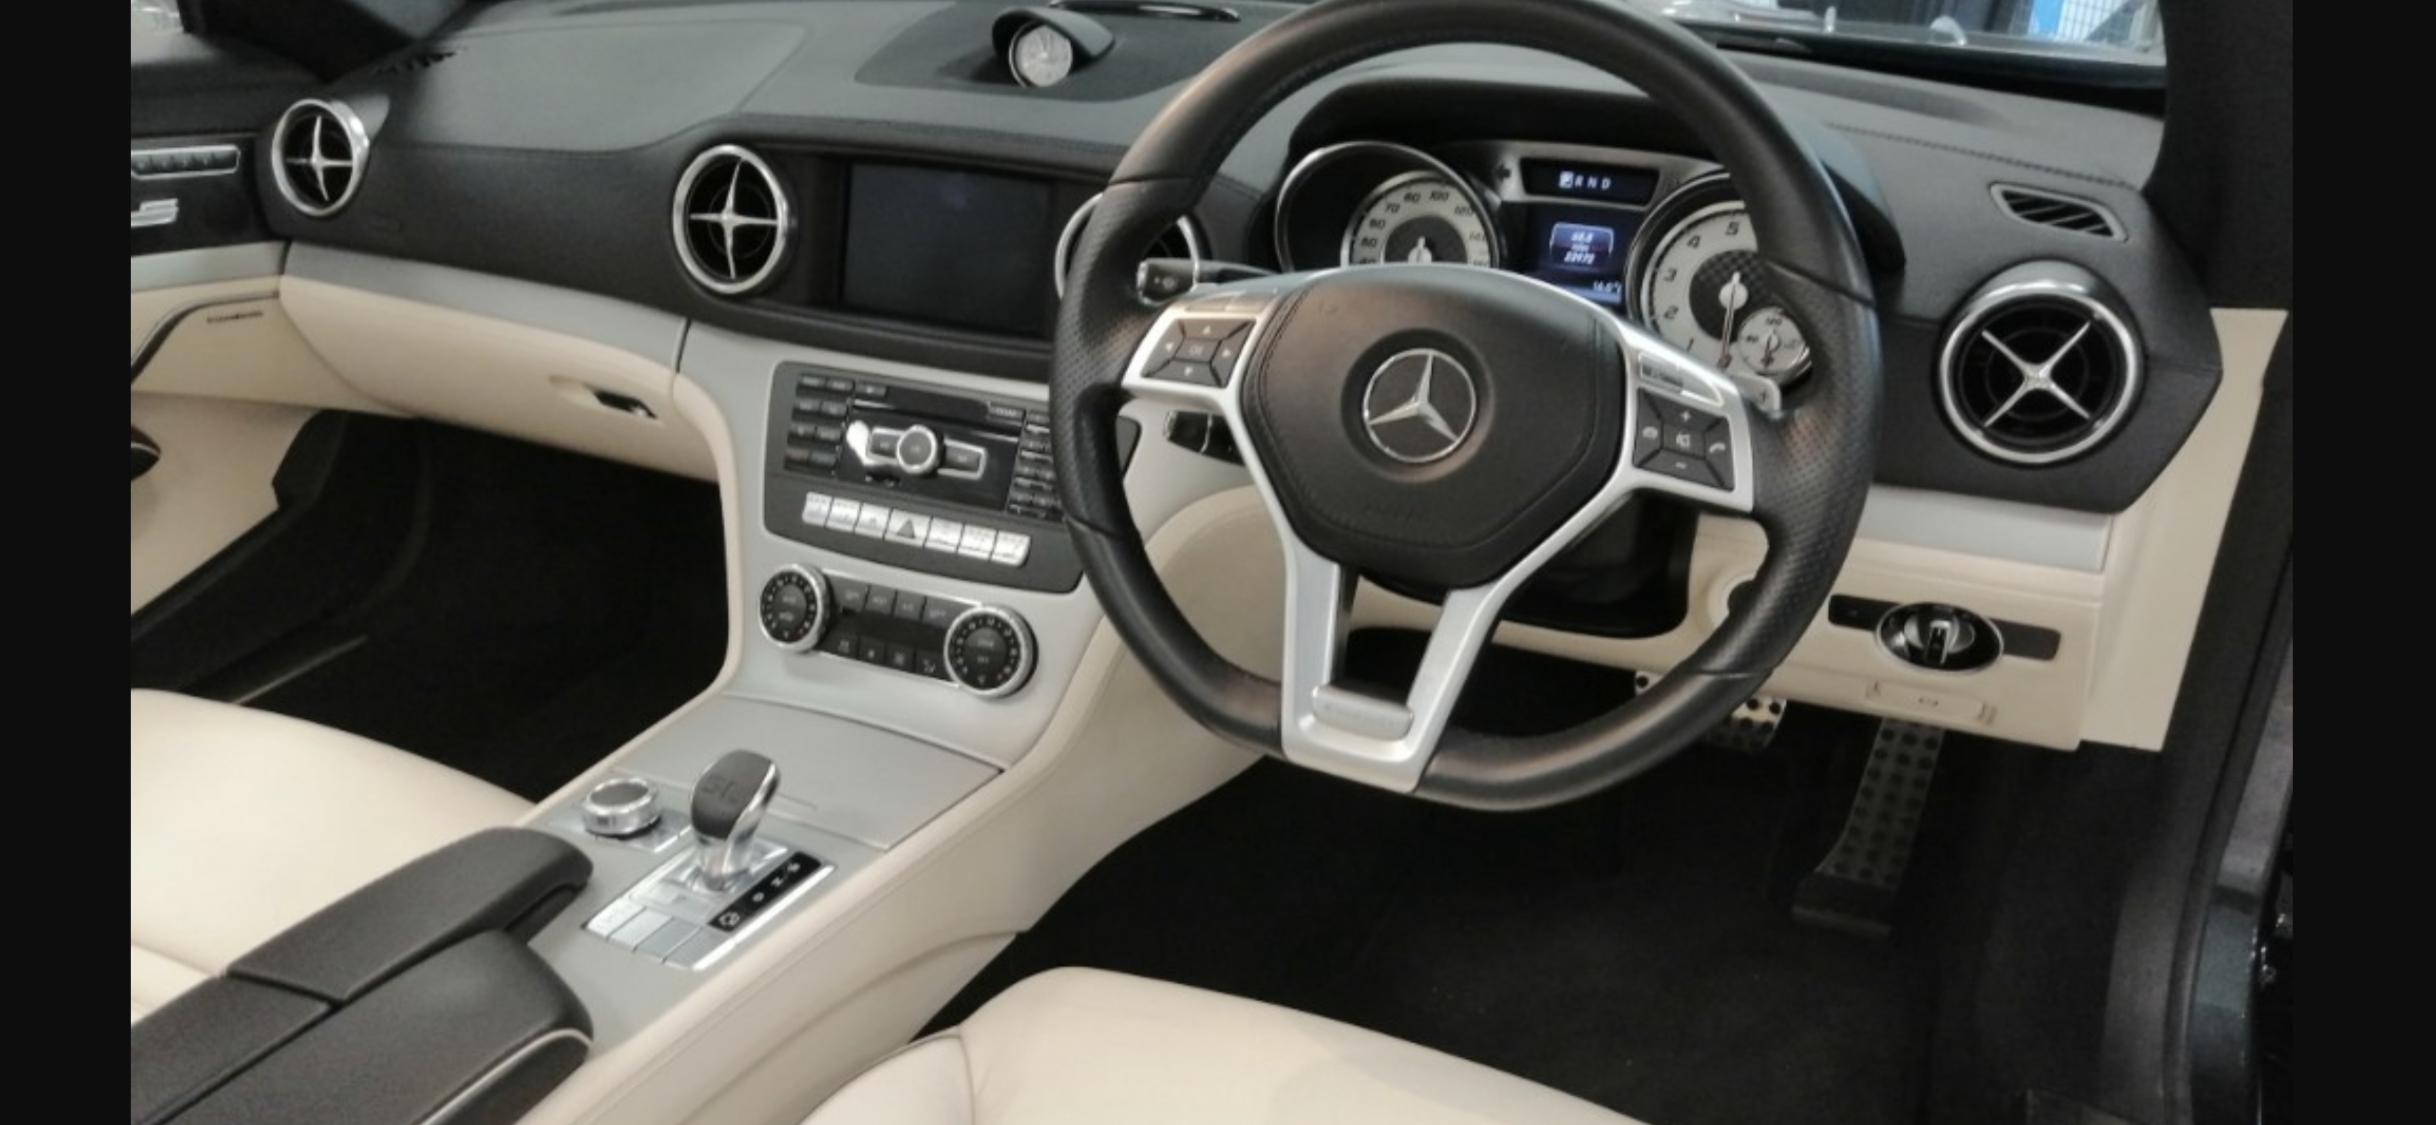 2013 SOLD - MERCEDES BENZ 350SL SPORT-AMG SPEC- SOLD For Sale (picture 2 of 6)